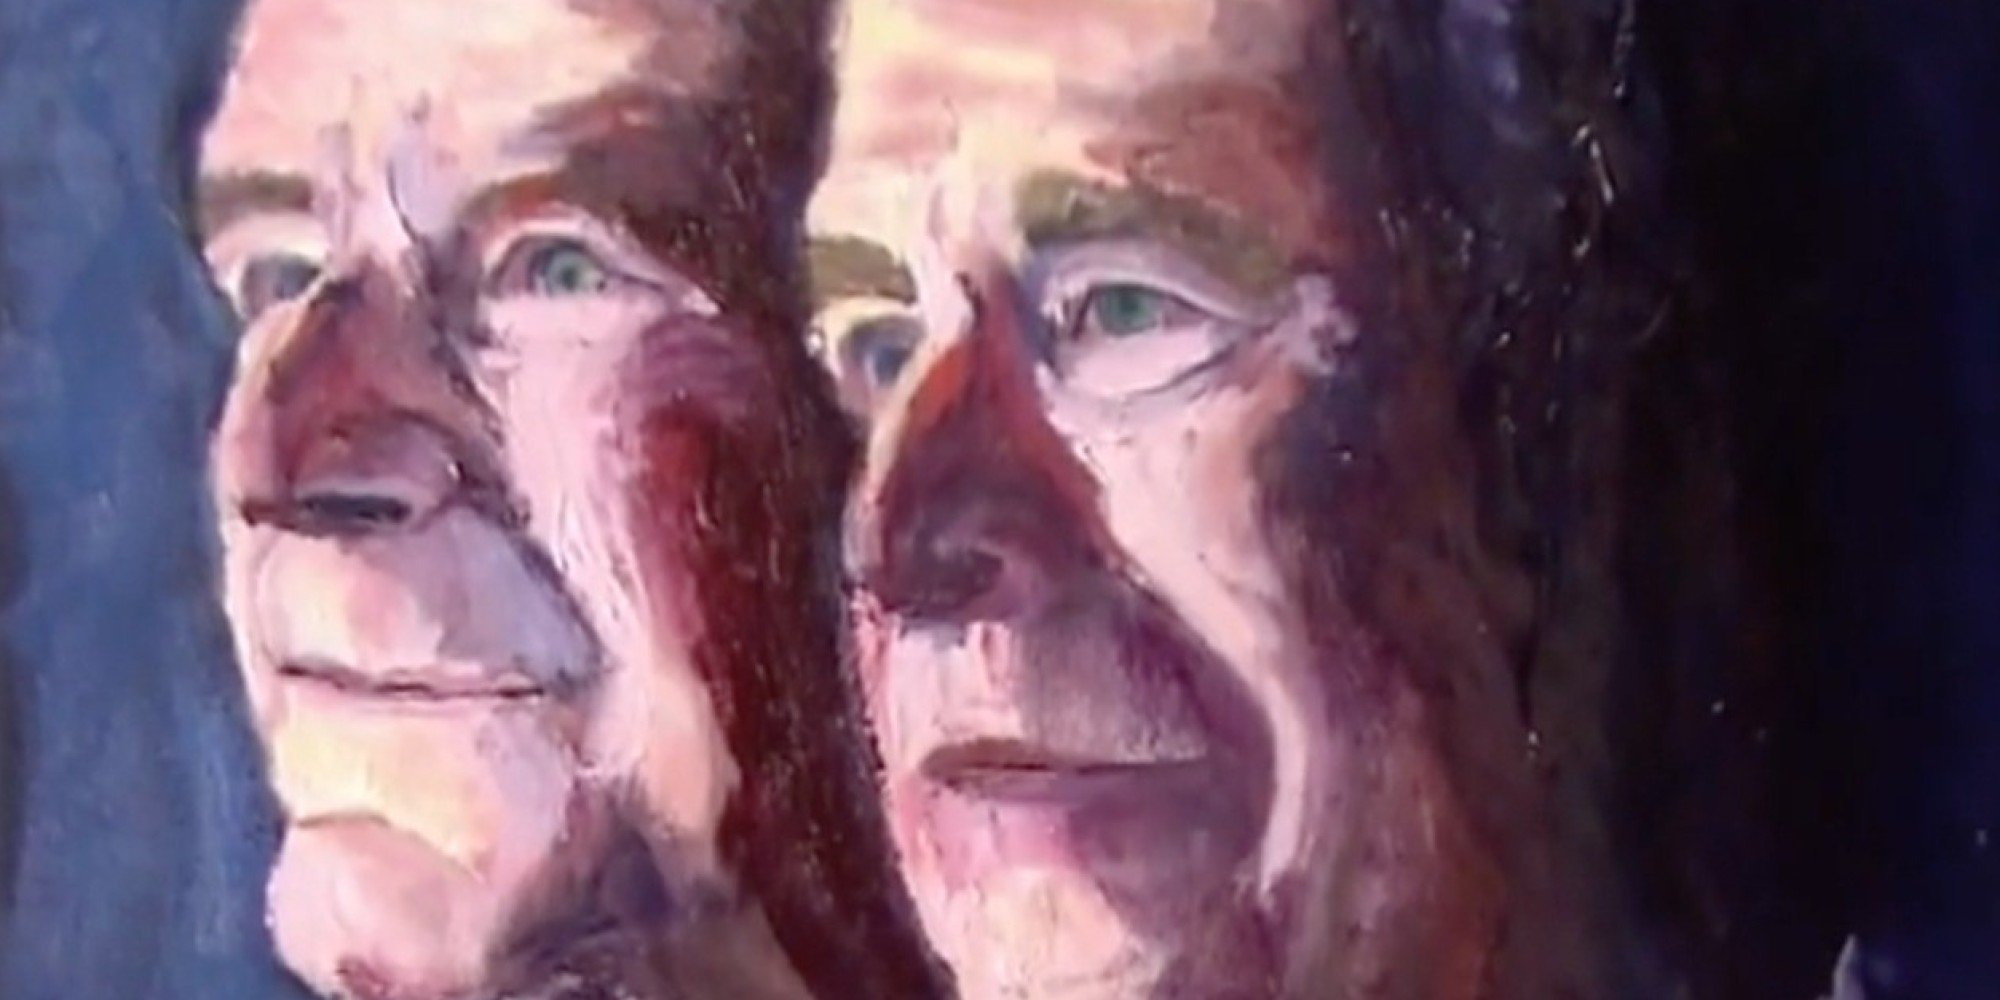 George W Bush Made This Portrait Of His Dad And Himself